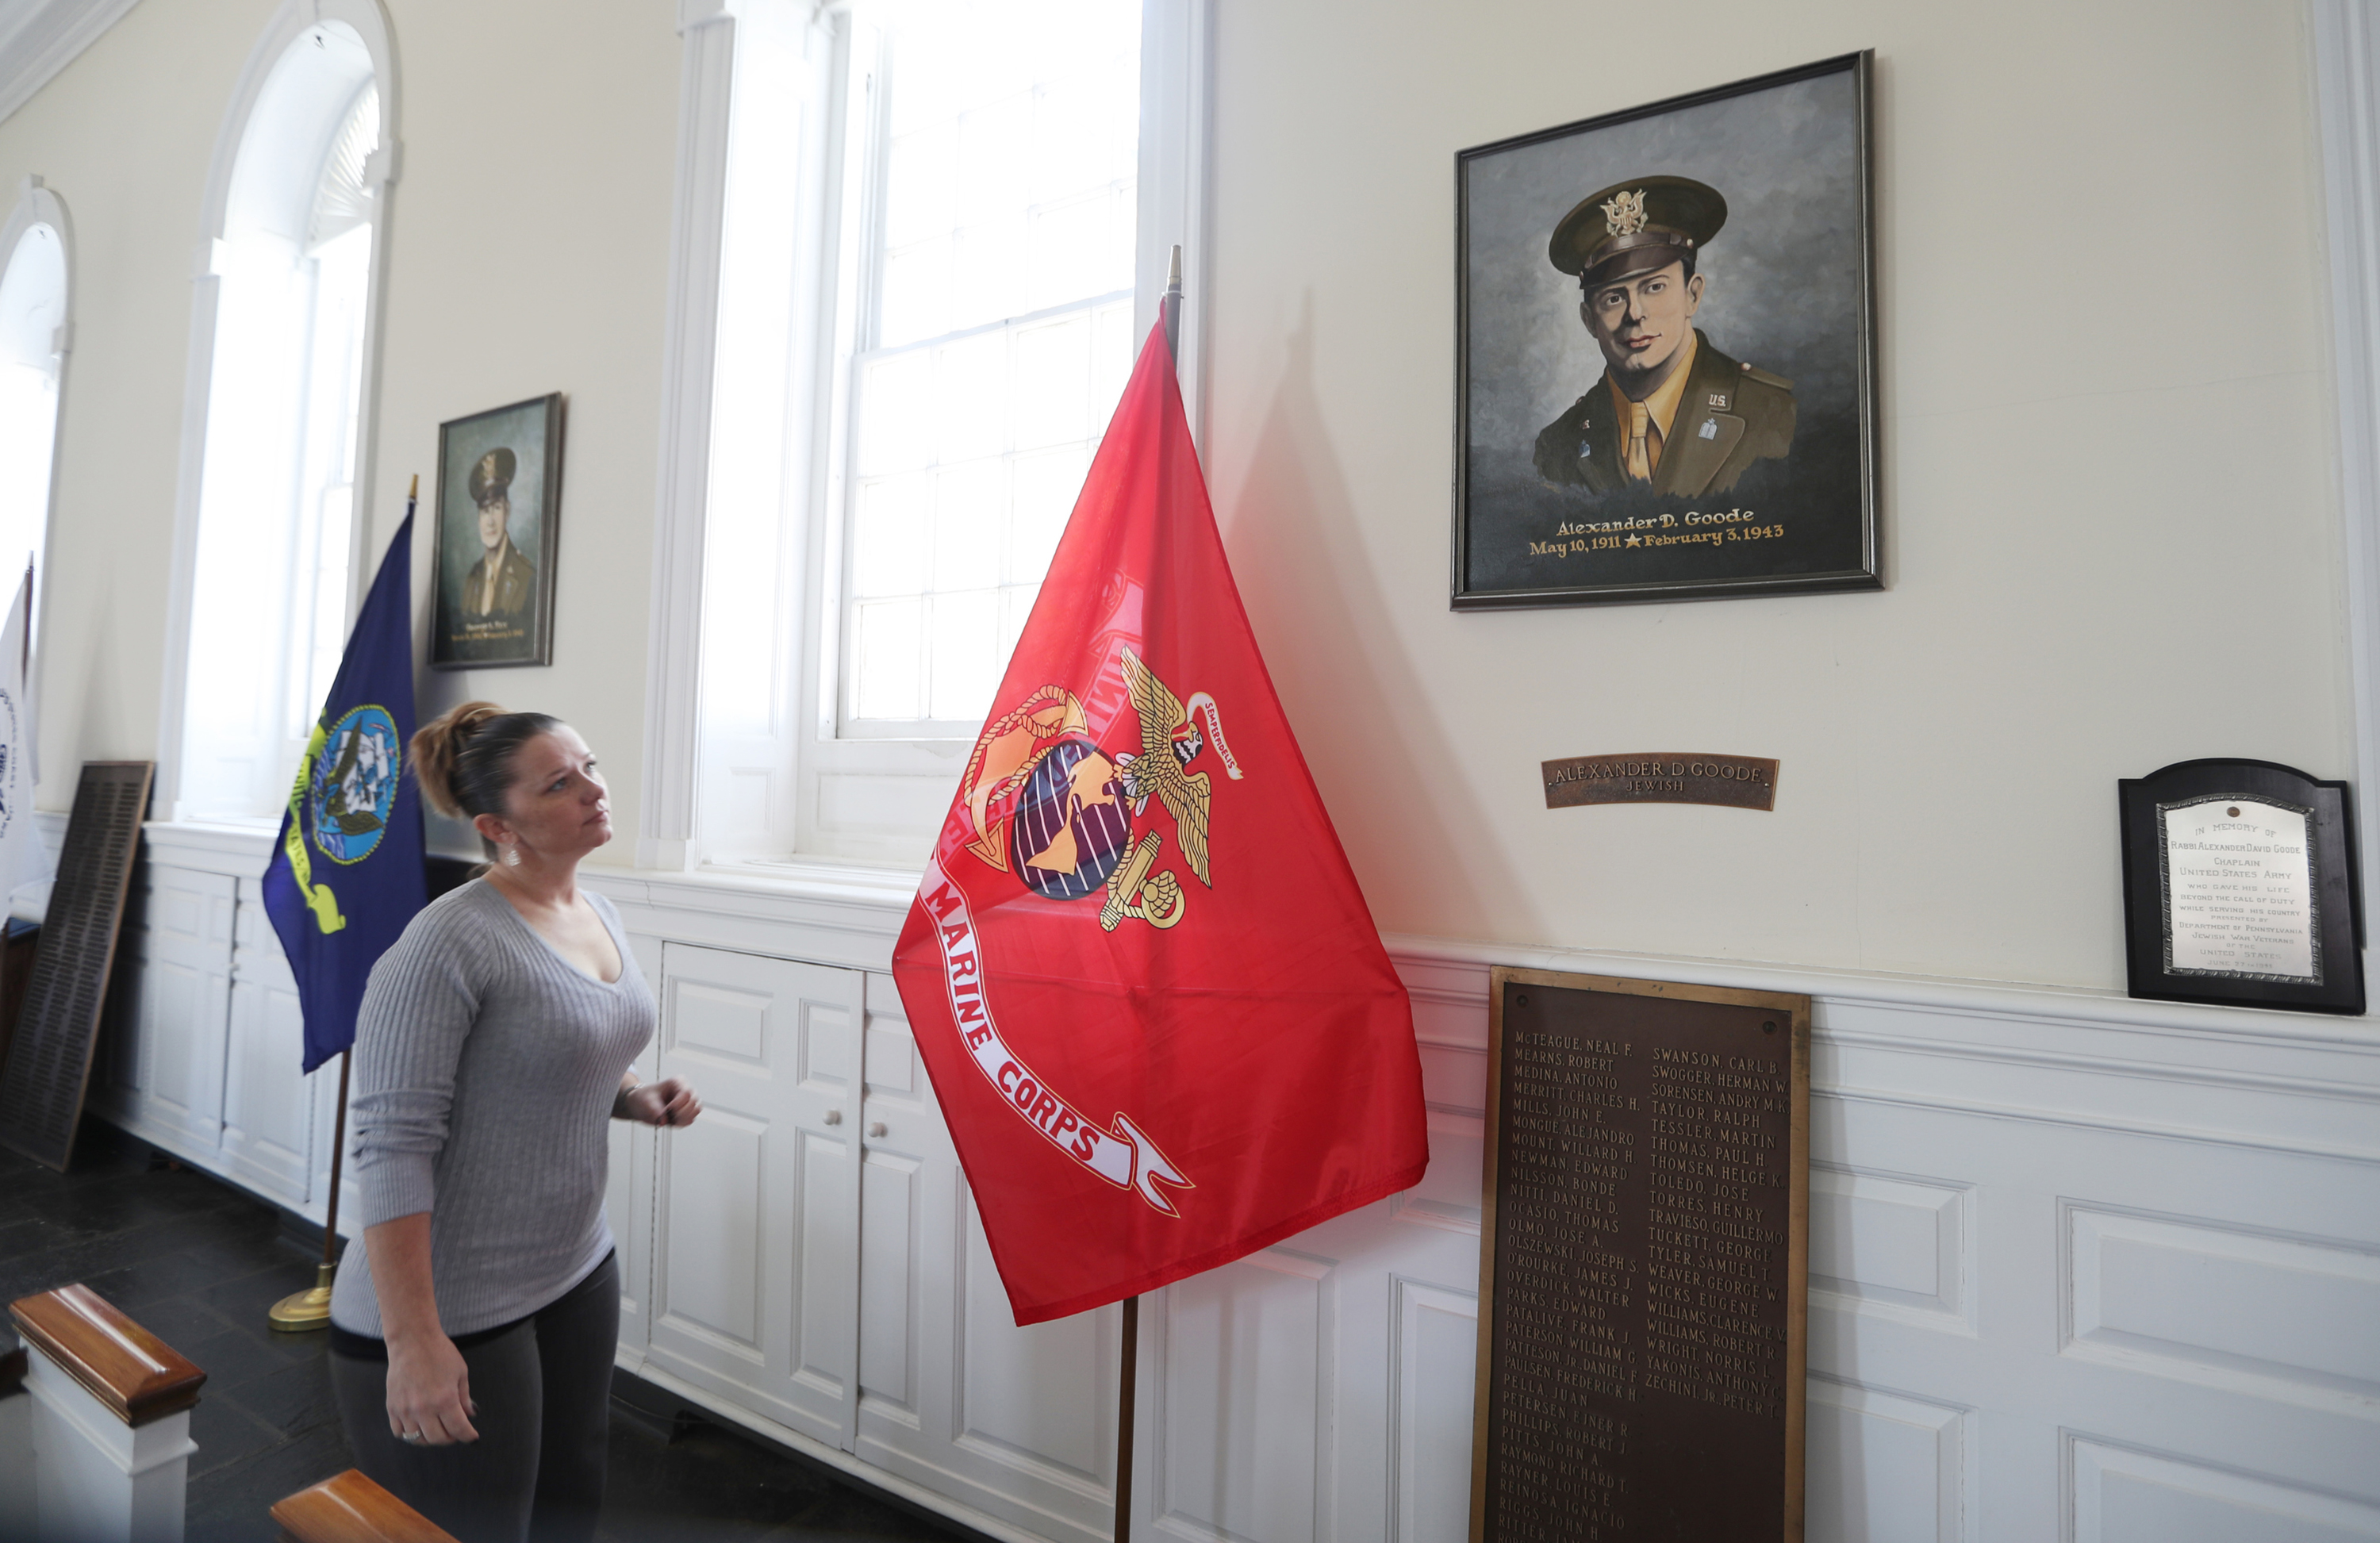 Executive Director Christine M. Beady looks at a painting of Rabbi Alexander D. Goode at the Chapel of the Four Chaplains at the The Navy Yard.